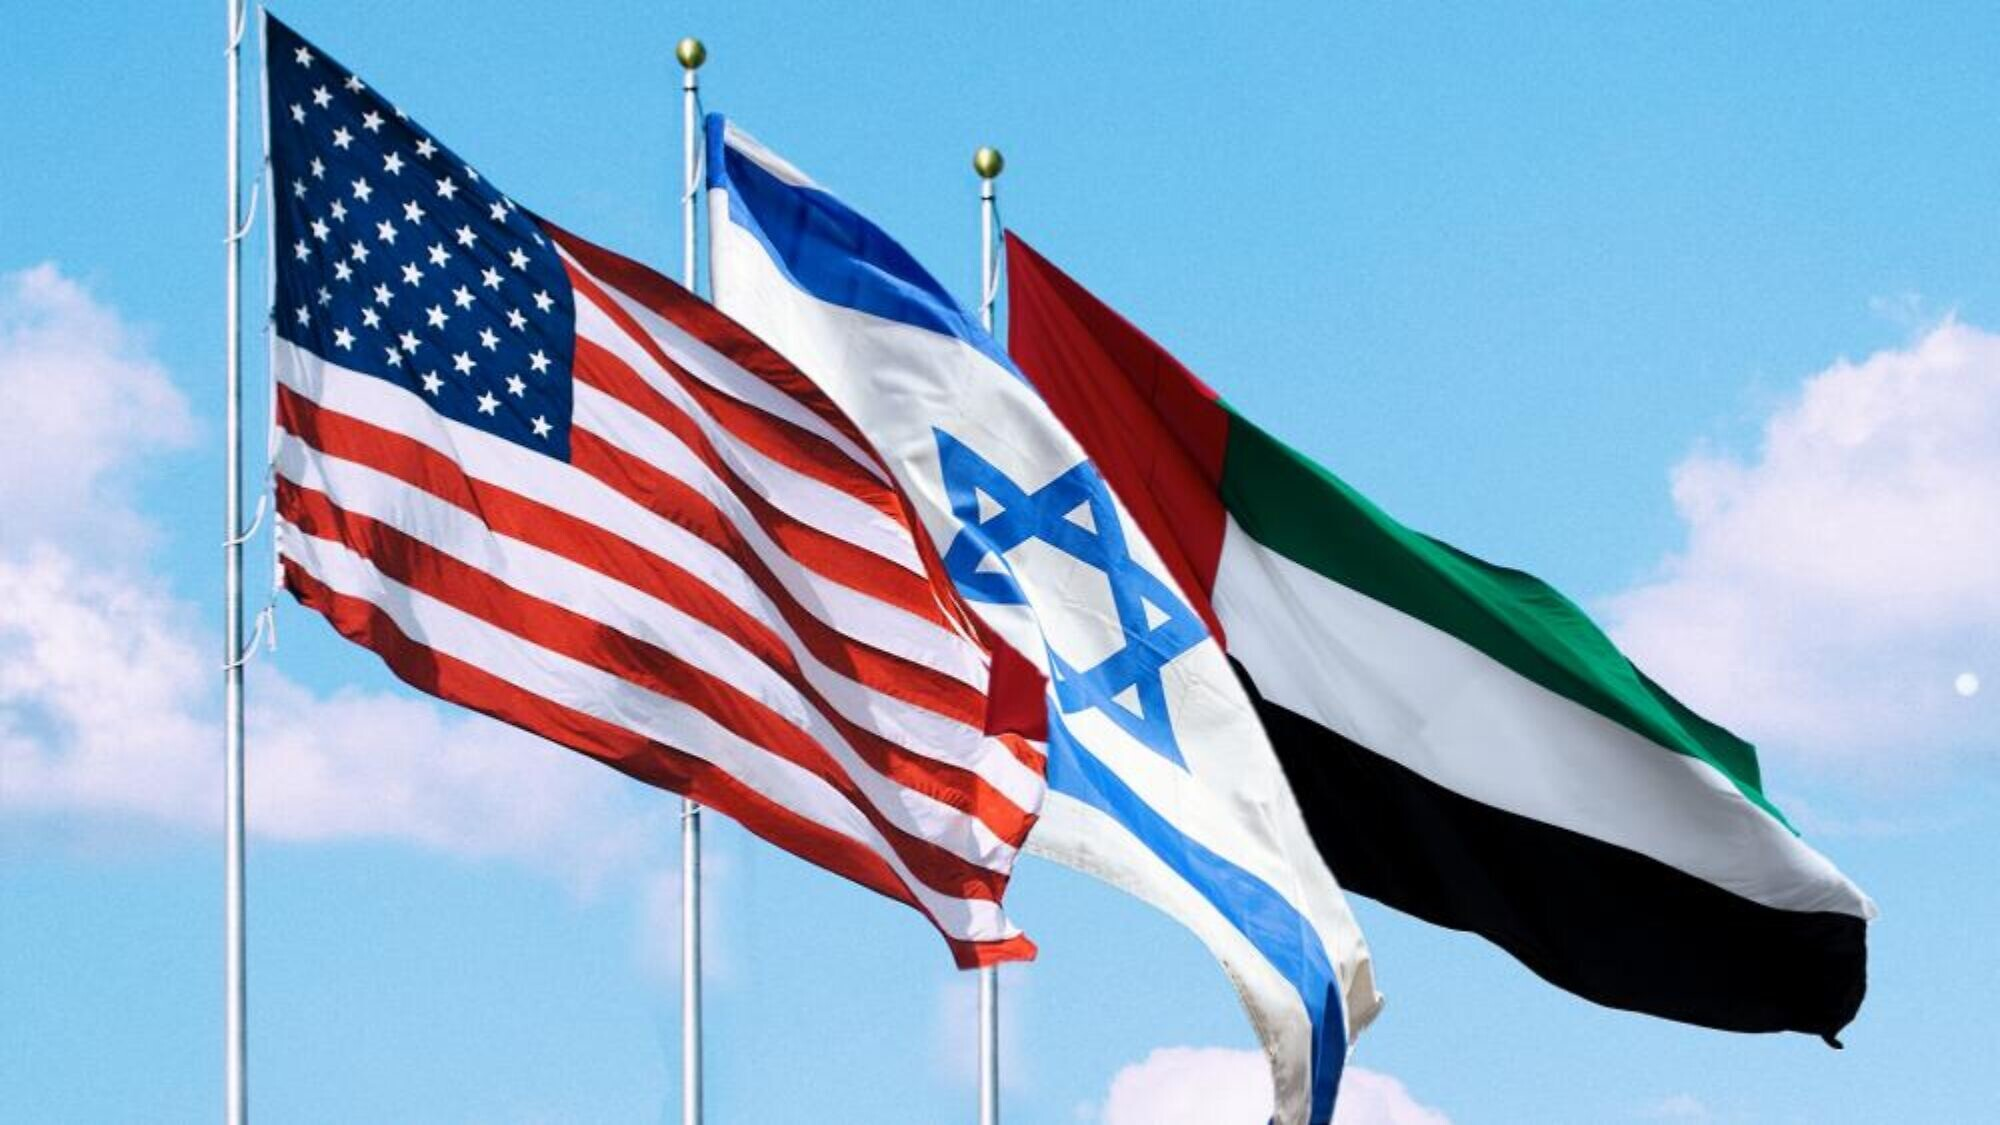 Arab reactions to the Israel-UAE normalization agreement